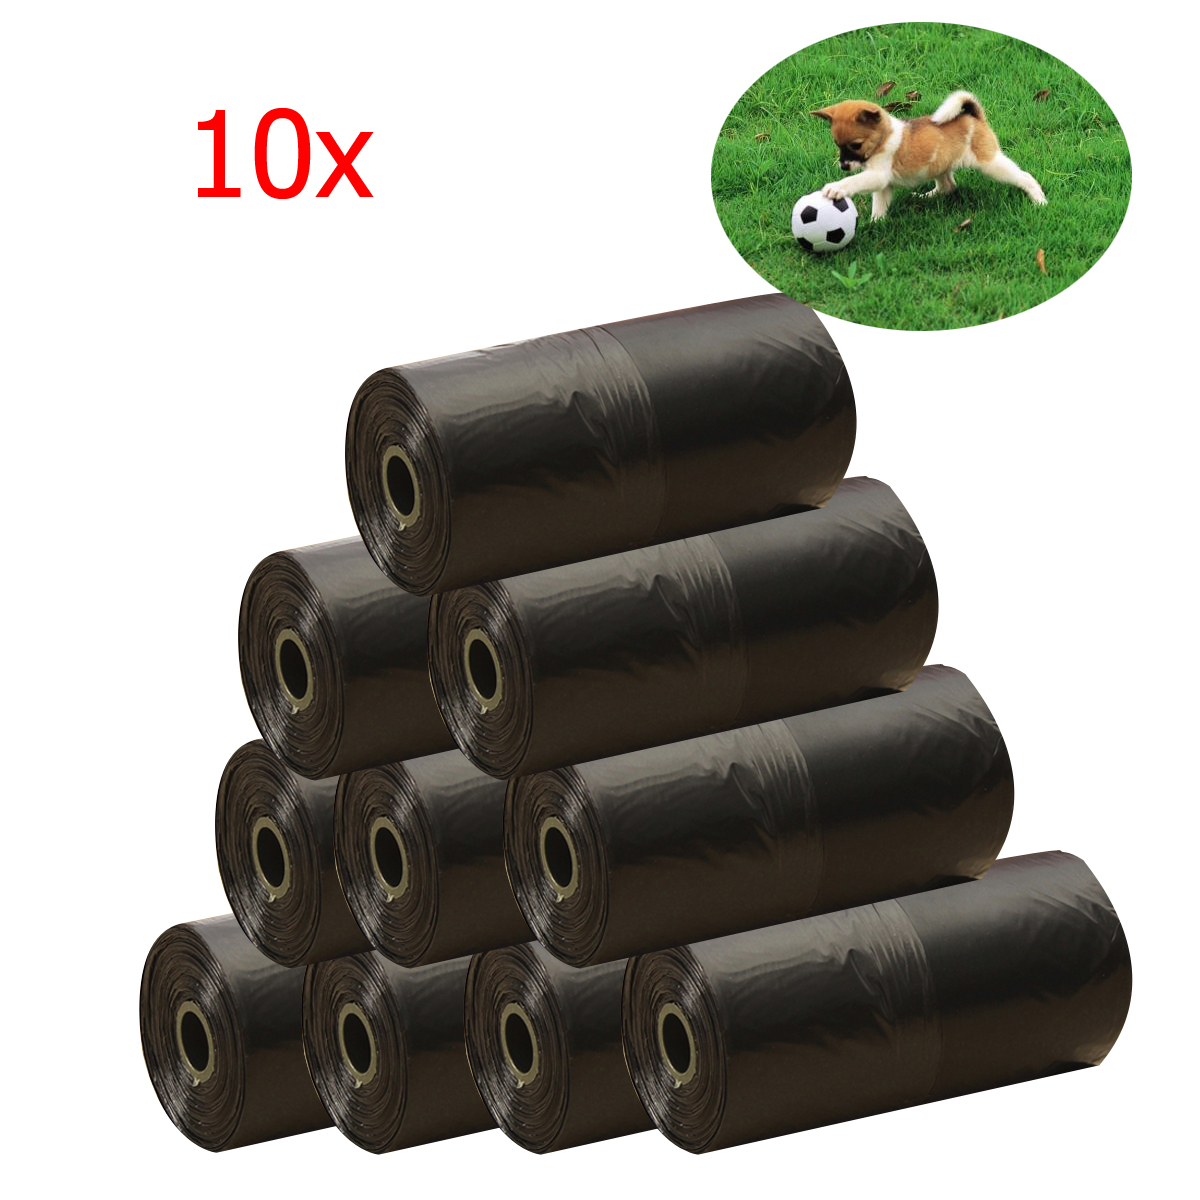 00e601a1a10 New 10 Roll Pet Dog Poo Bag Cat Waste Poop Pick Up Biodegradable ...